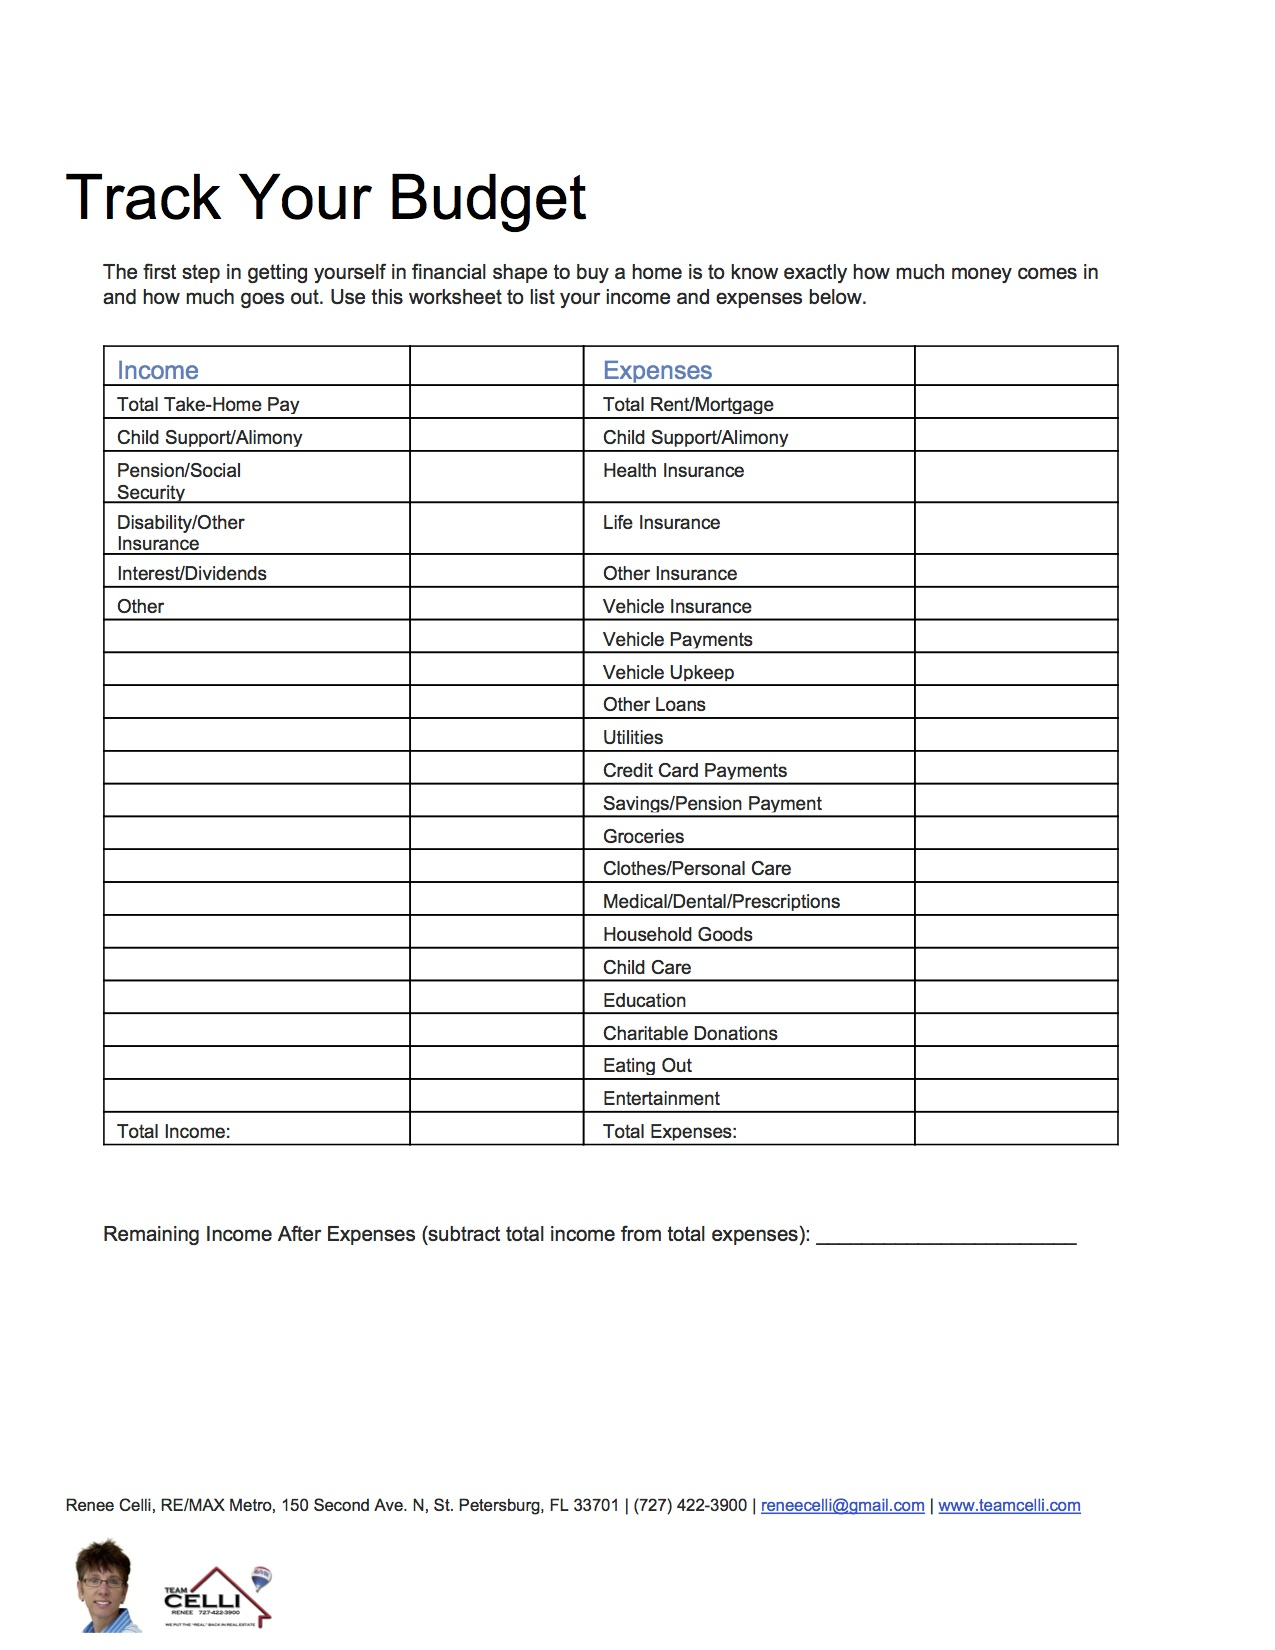 Worksheets Budget For Dummies Worksheet use a budget worksheet to prepare for buying home when it comes using those mortgage calculators see how much house you can afford feel free print out this help keep